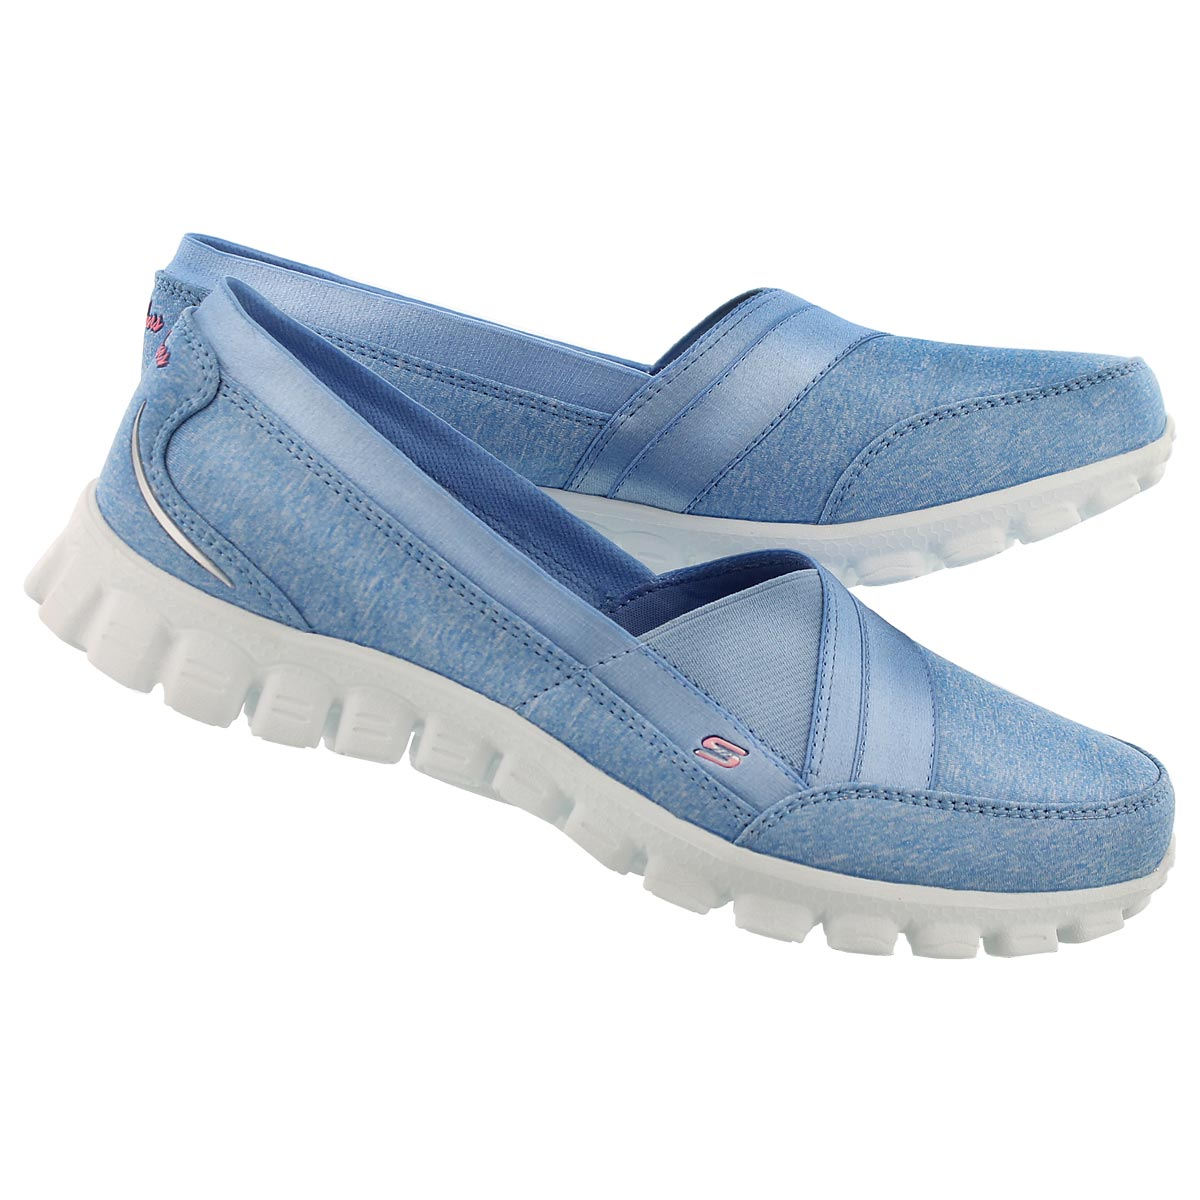 Lds Fascination lt blue slipon walking